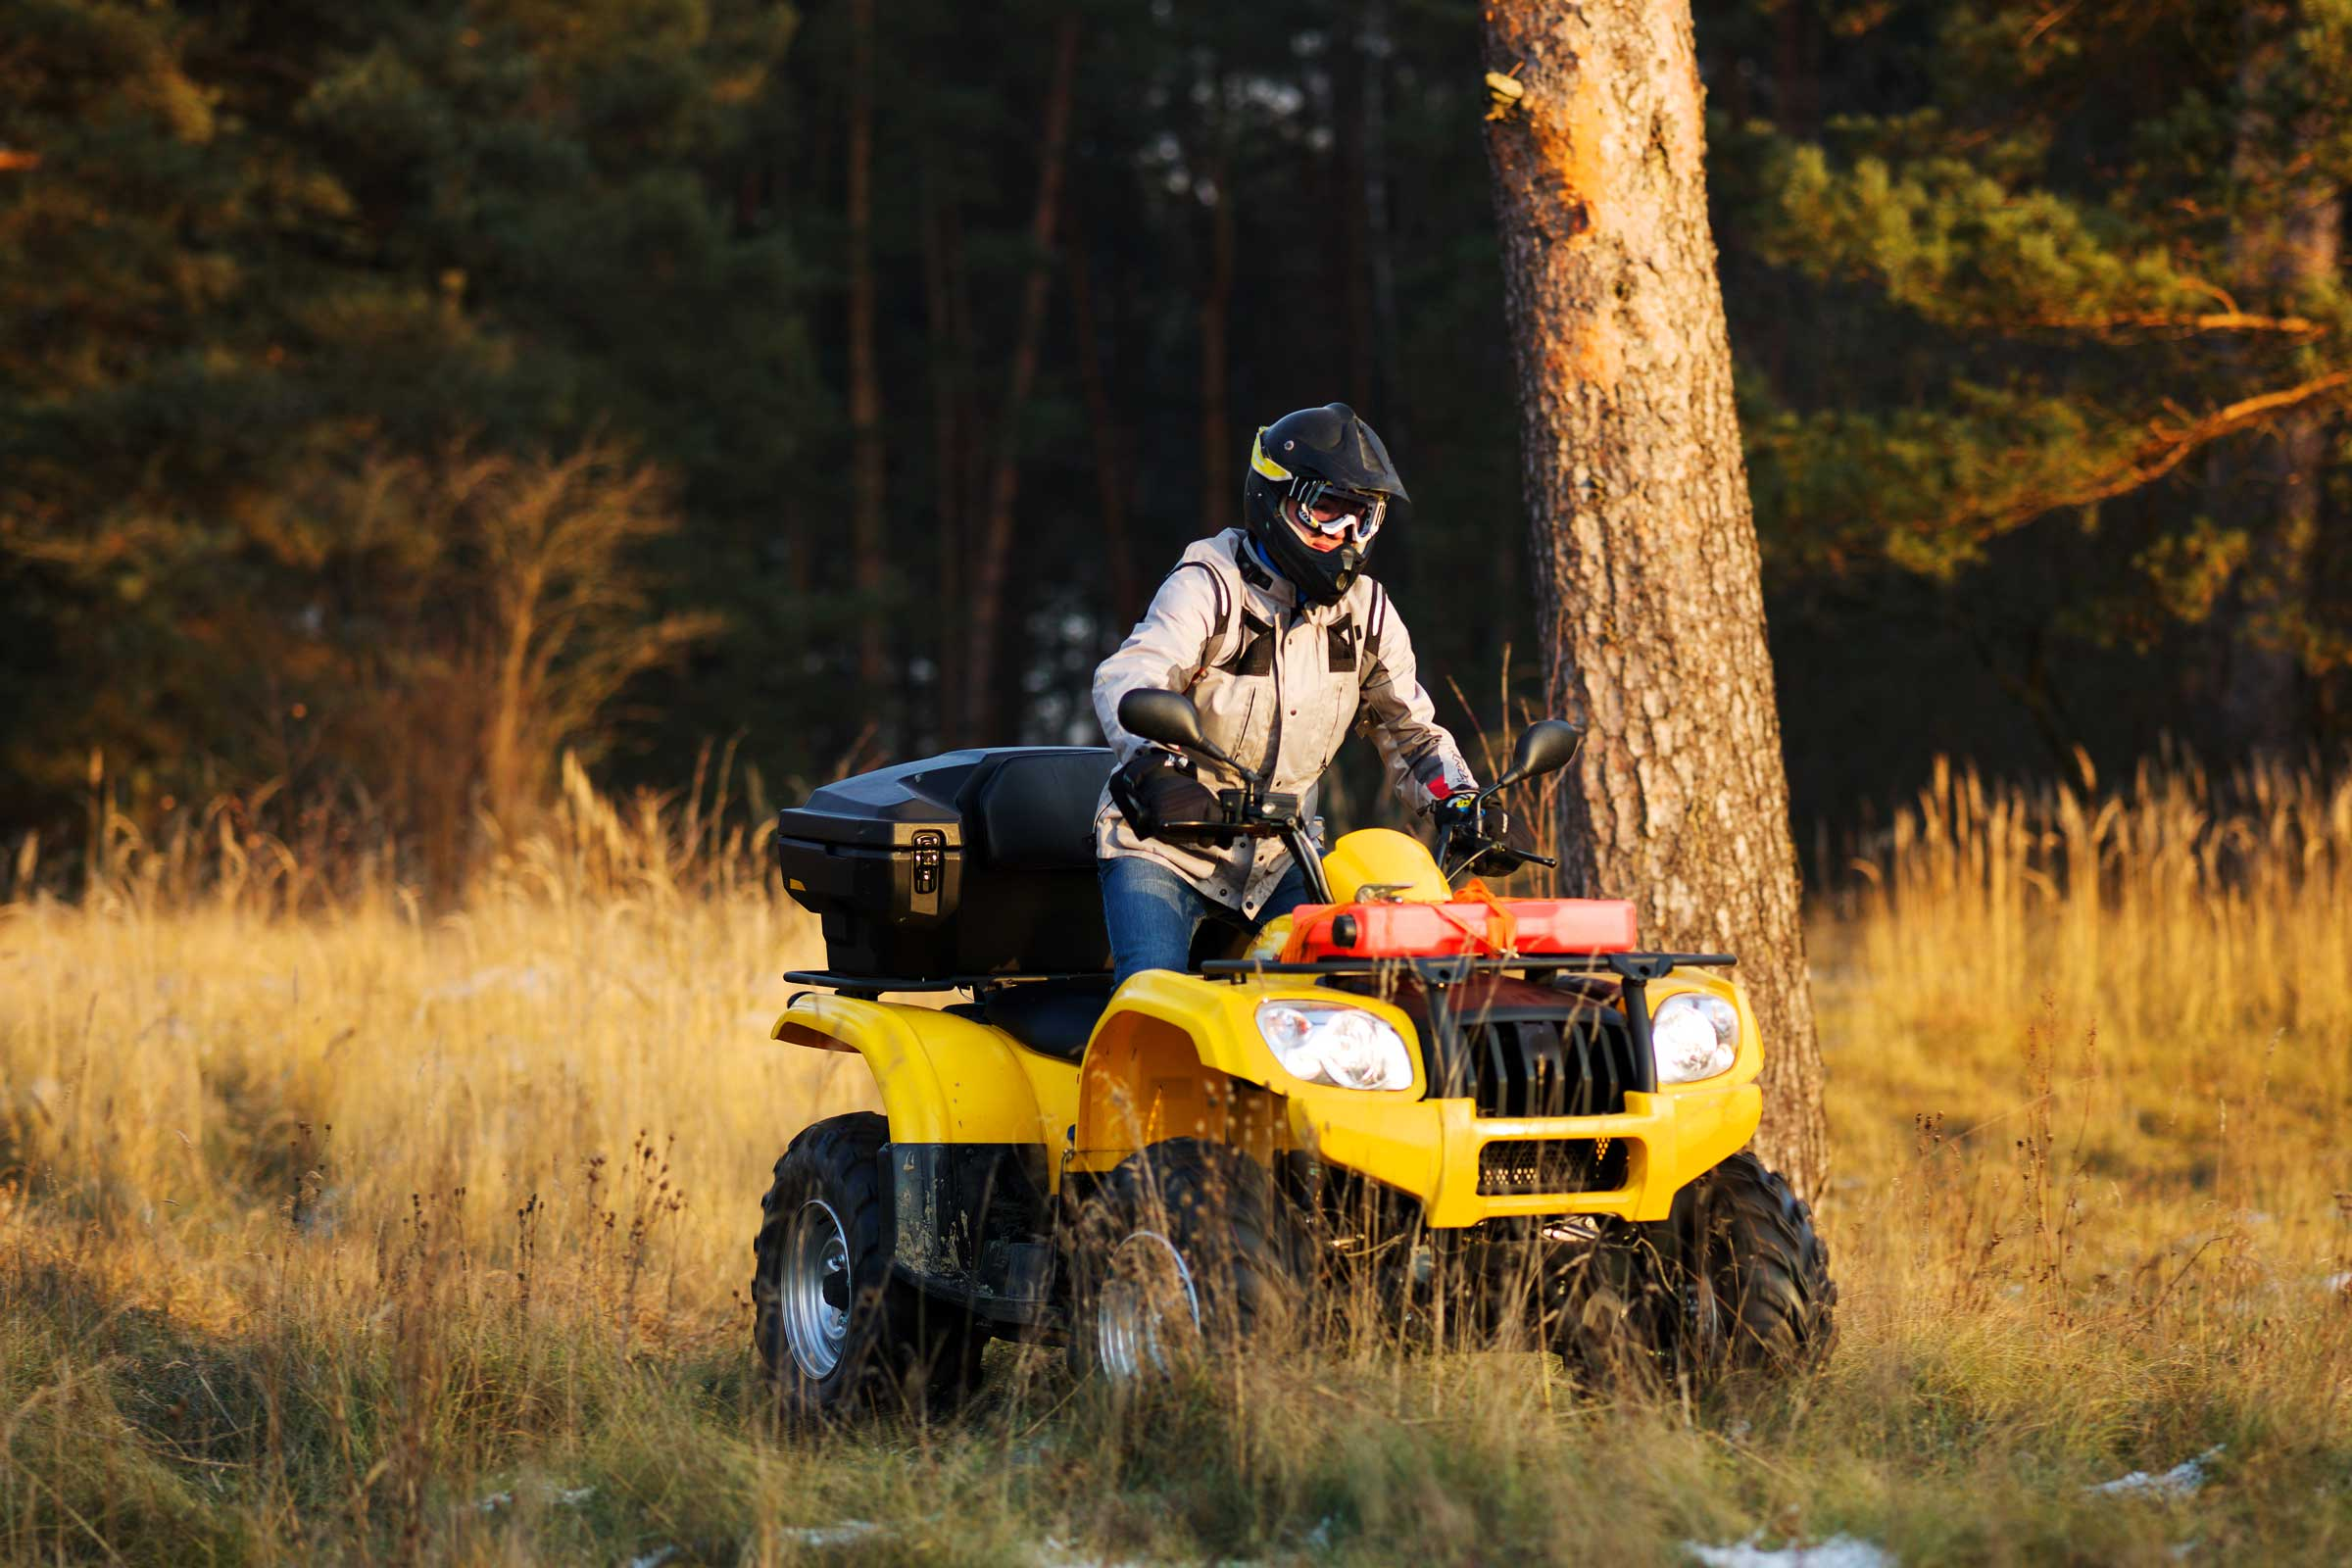 Safe & Responsible use of off-road vehicles on grasslands